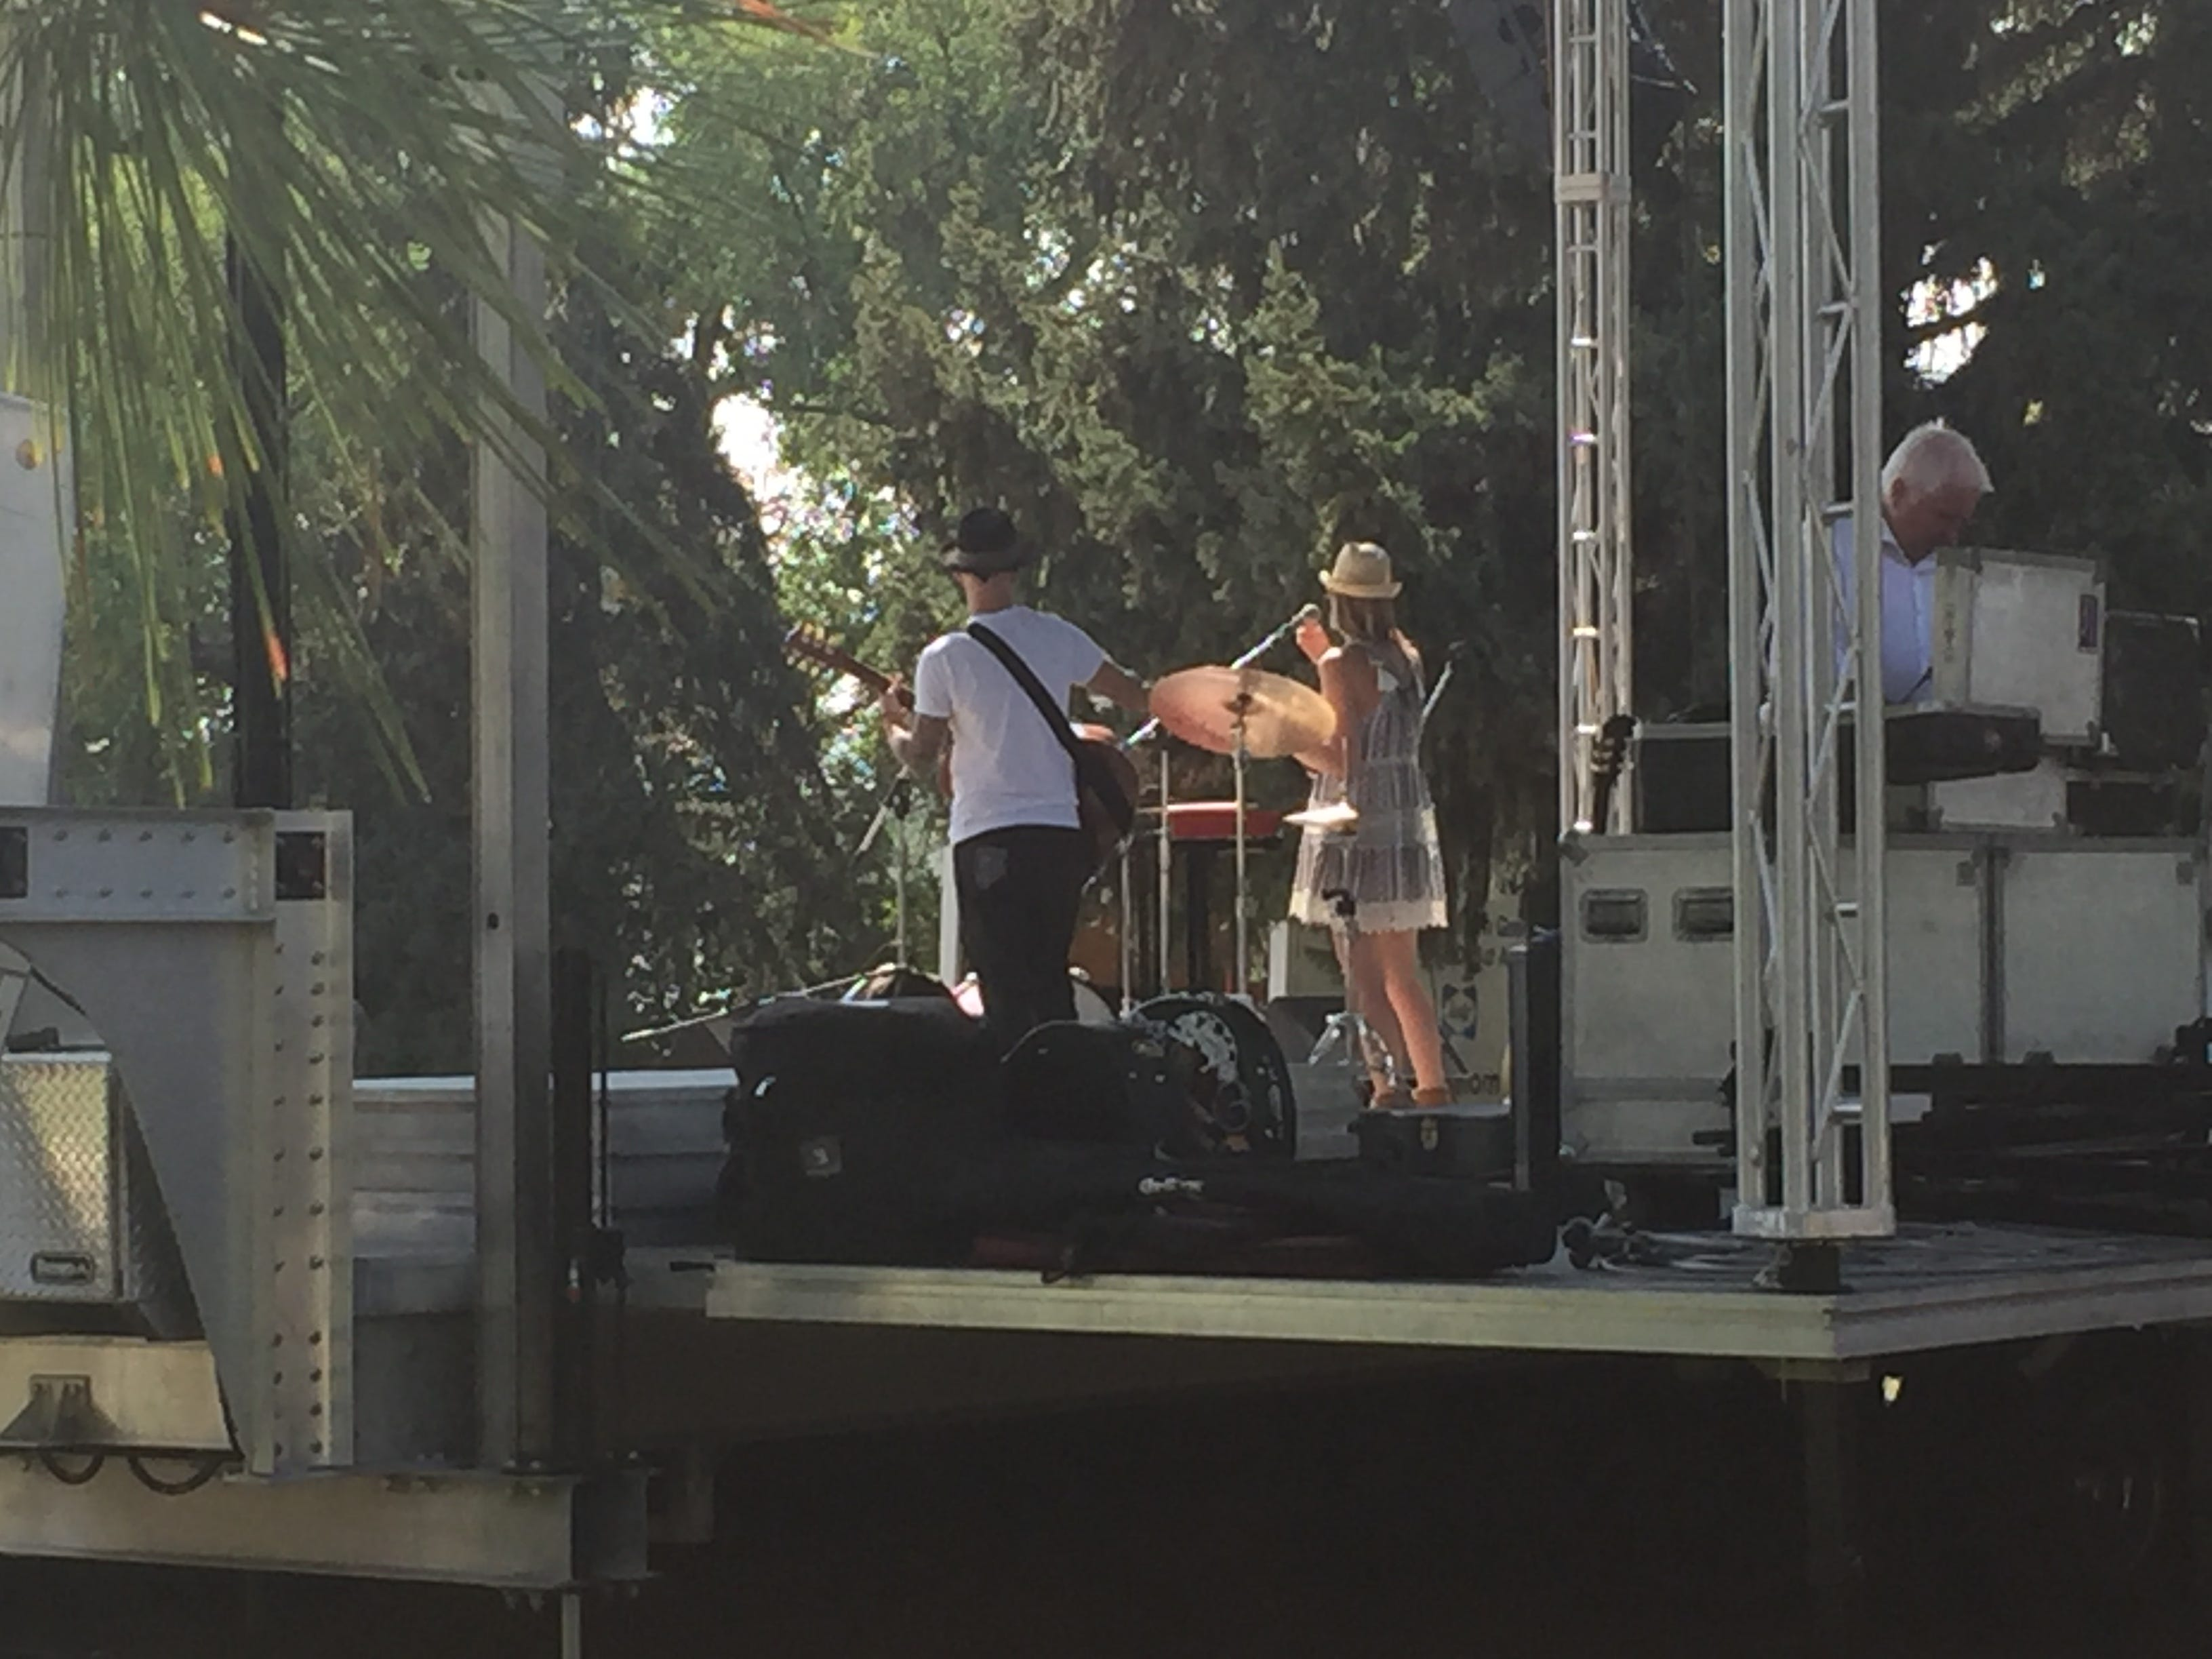 Preparring for a hot night of Music on the Mo at Oddfellows Park in Great Falls Thursday.